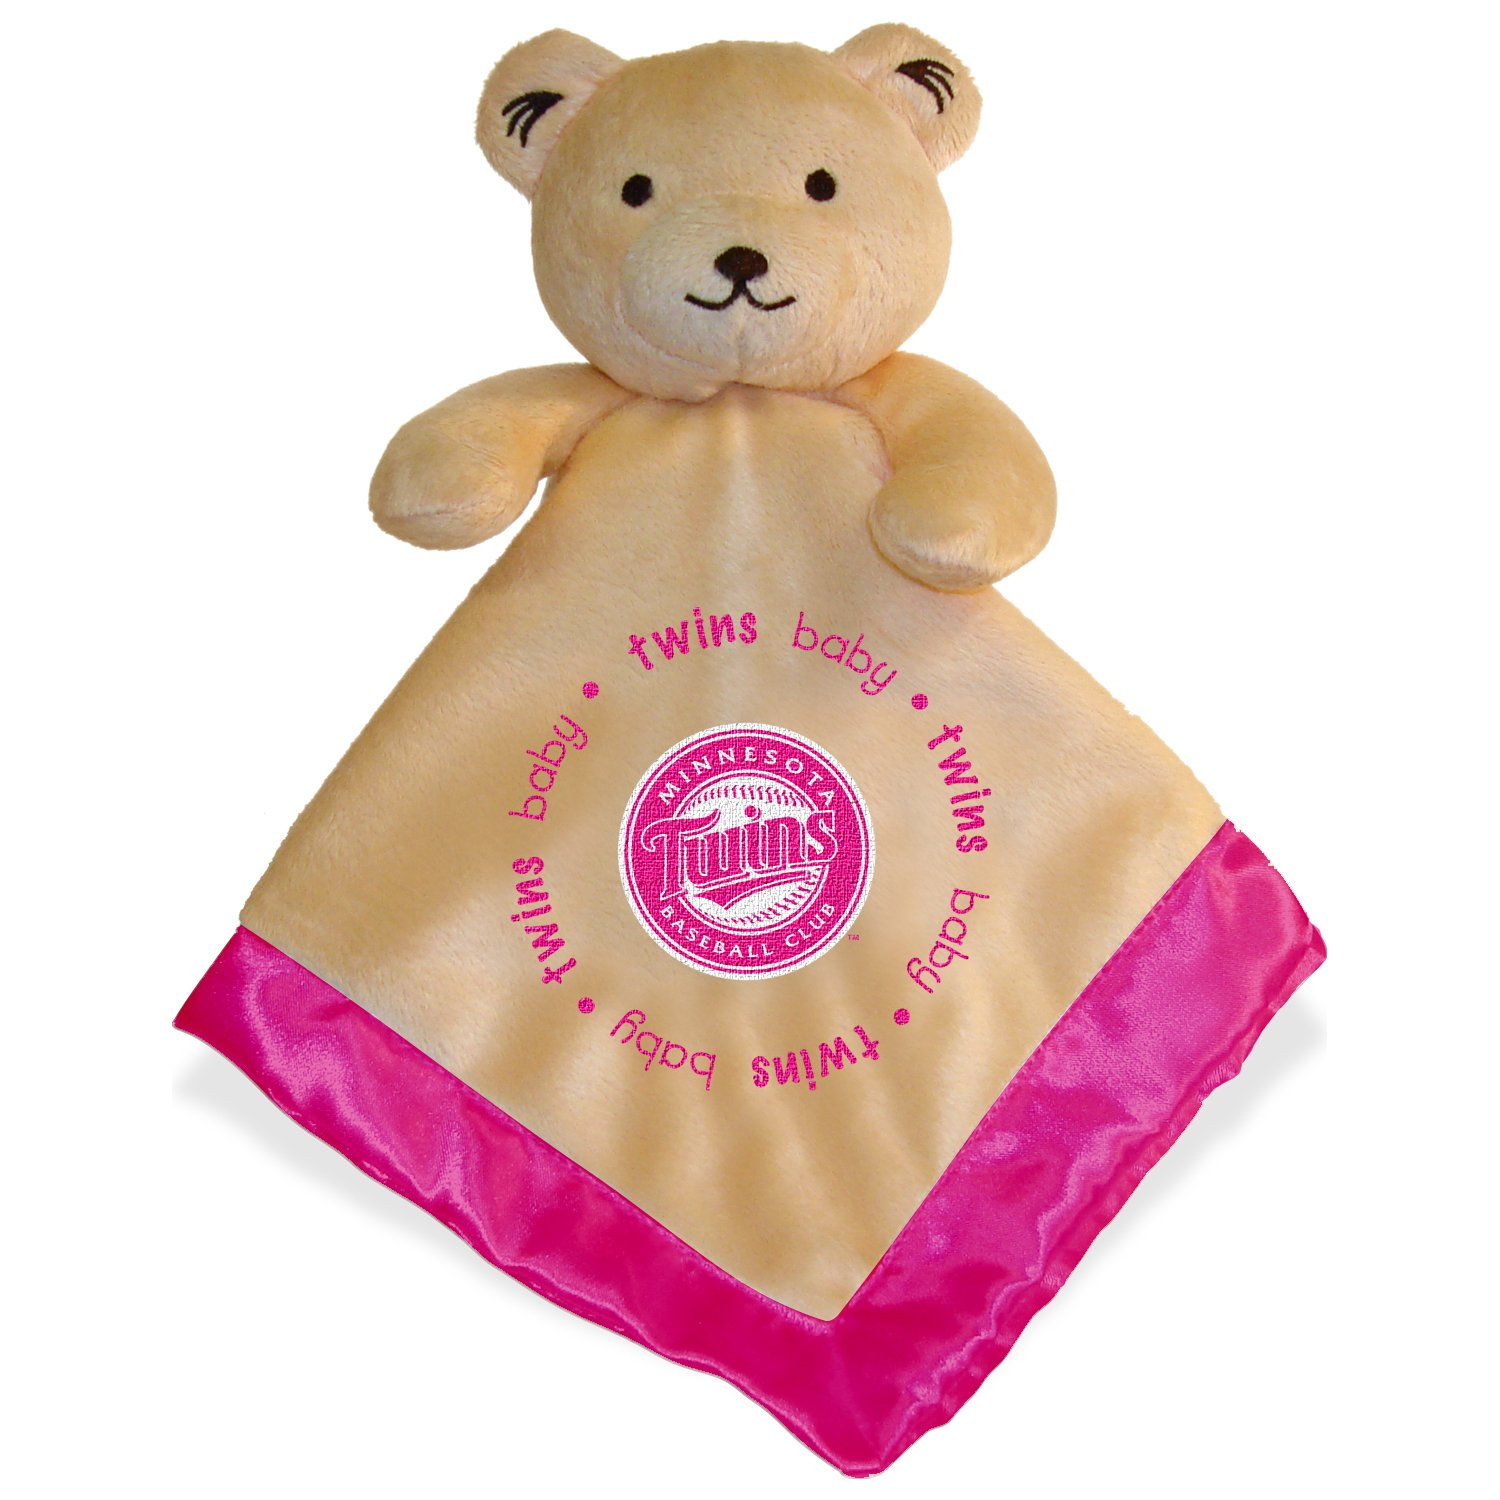 Baby Fanatic Security Bear Minnesota Twins Pink Sports Images Inc BFBBMINSBP